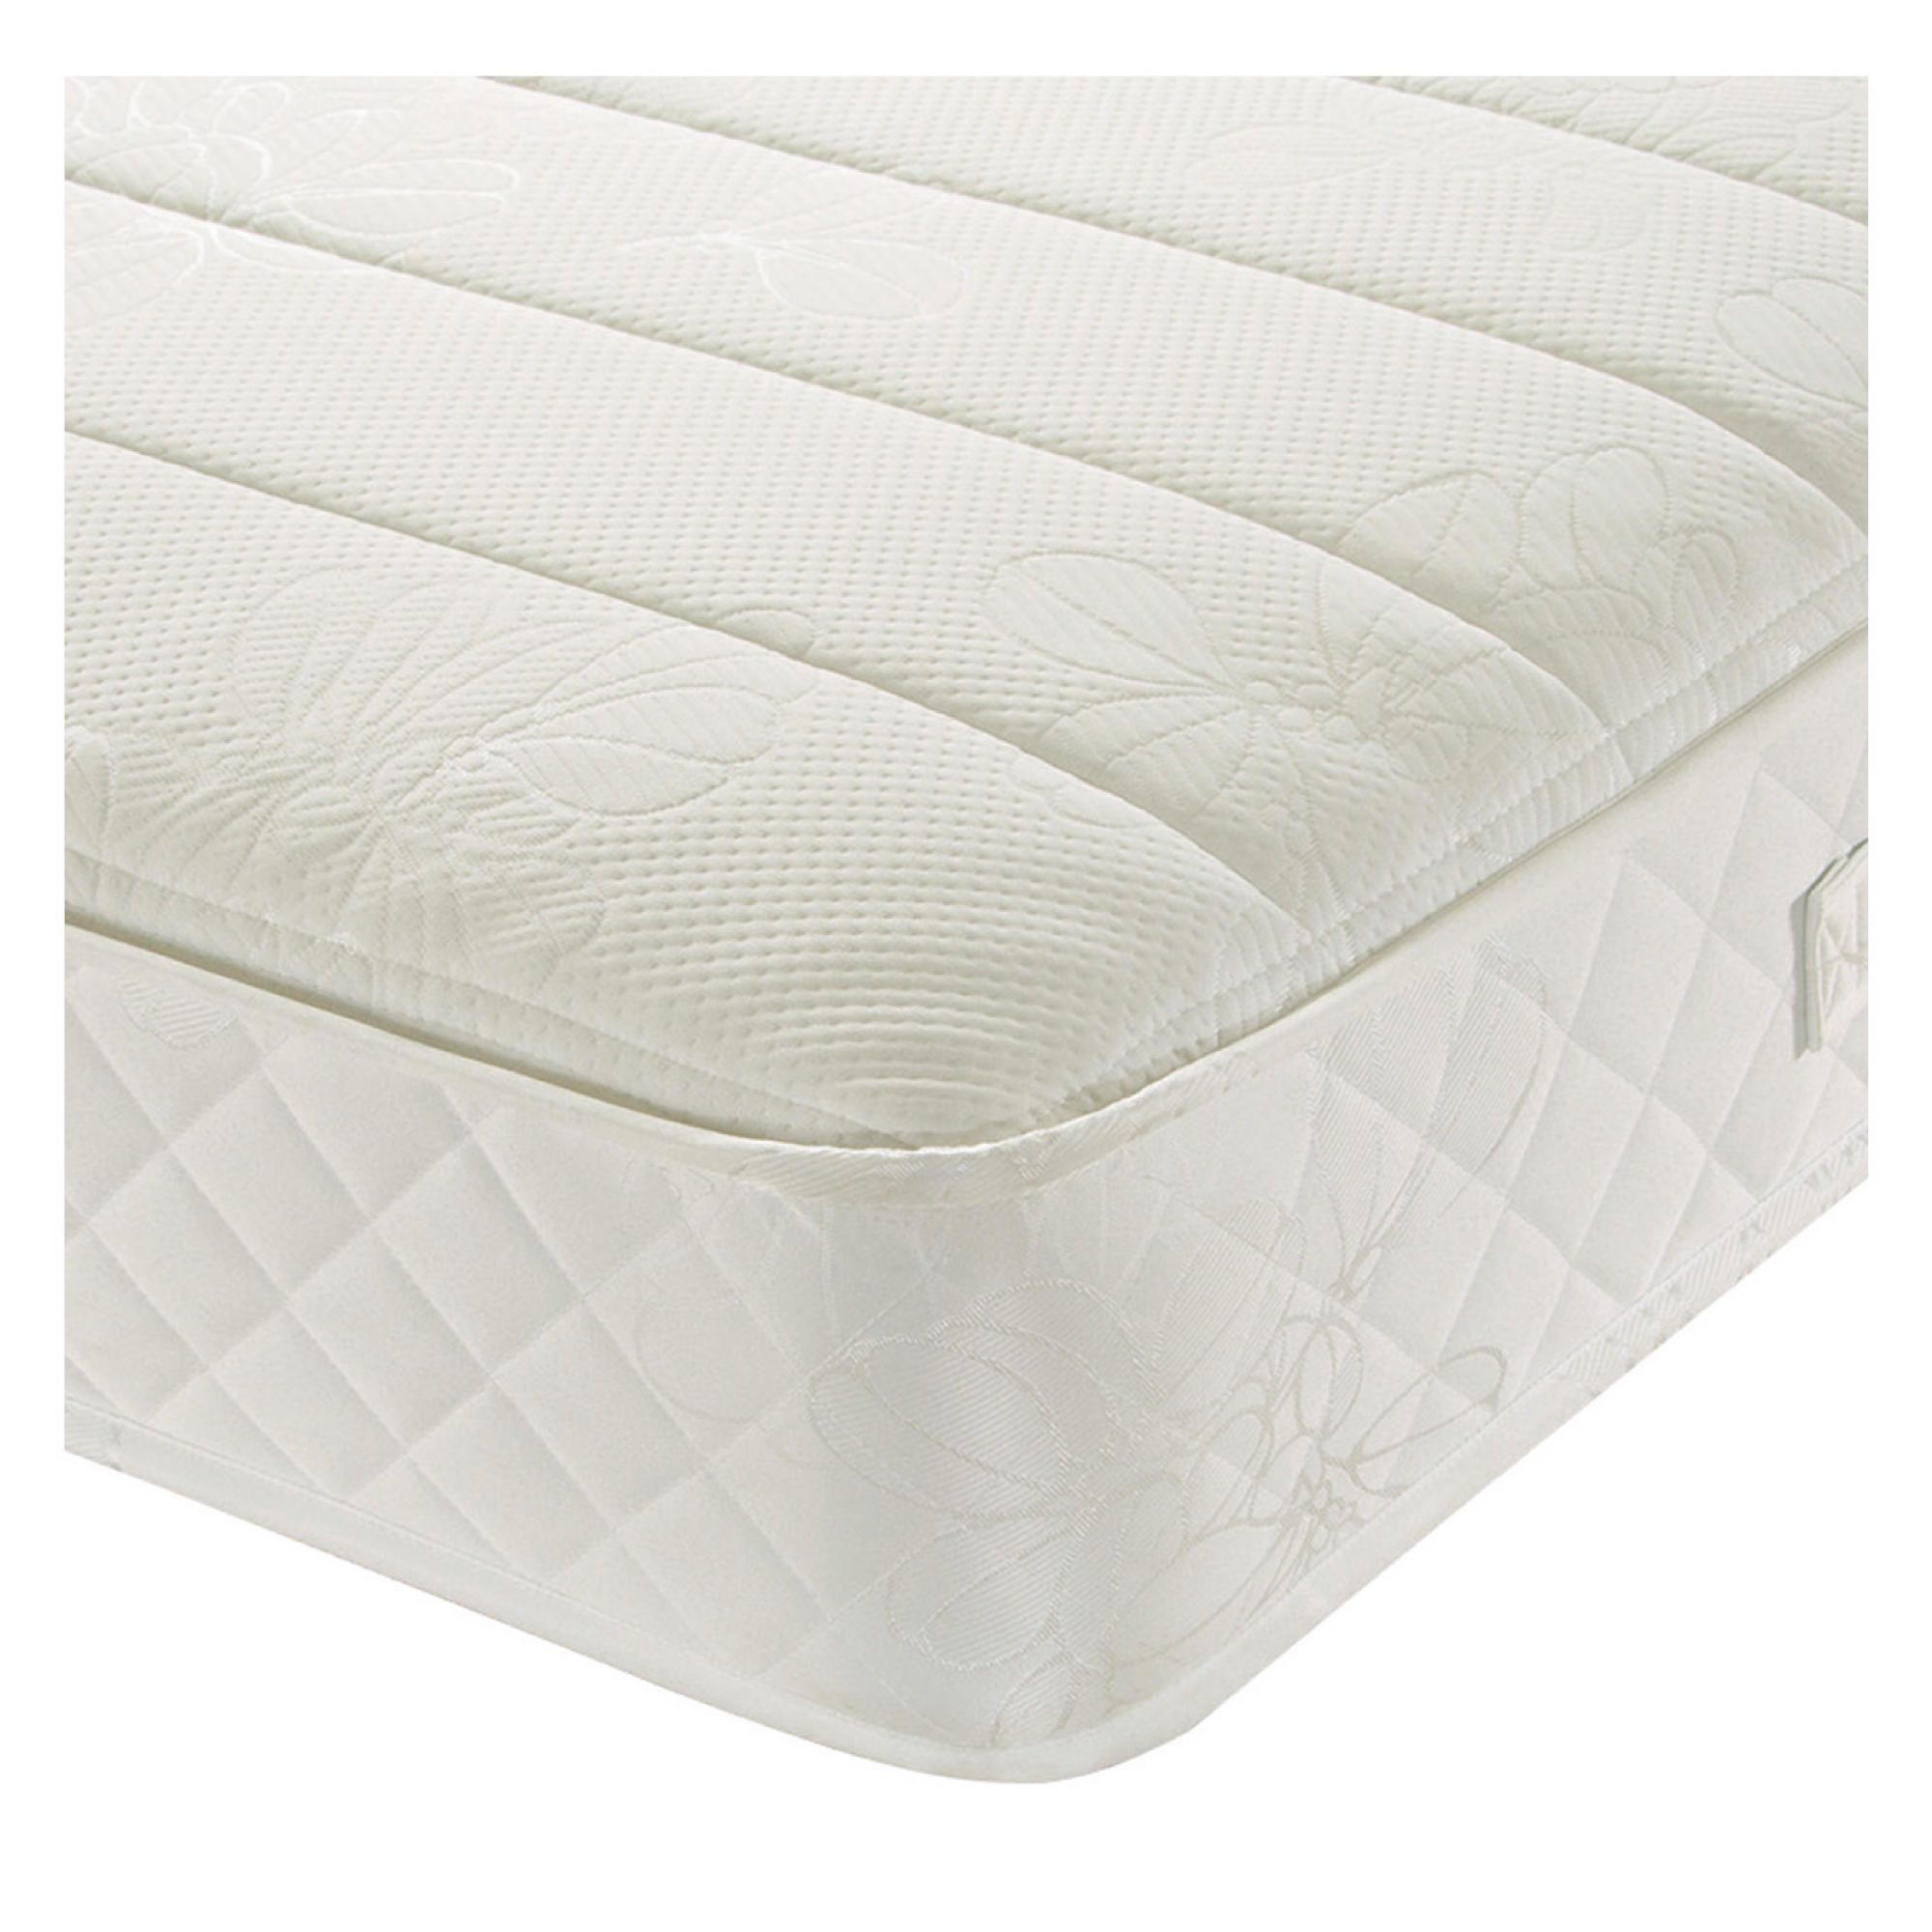 Home And Garden Furniture Silentnight Pocket Essentials Memory Foam Kingsize Mattress